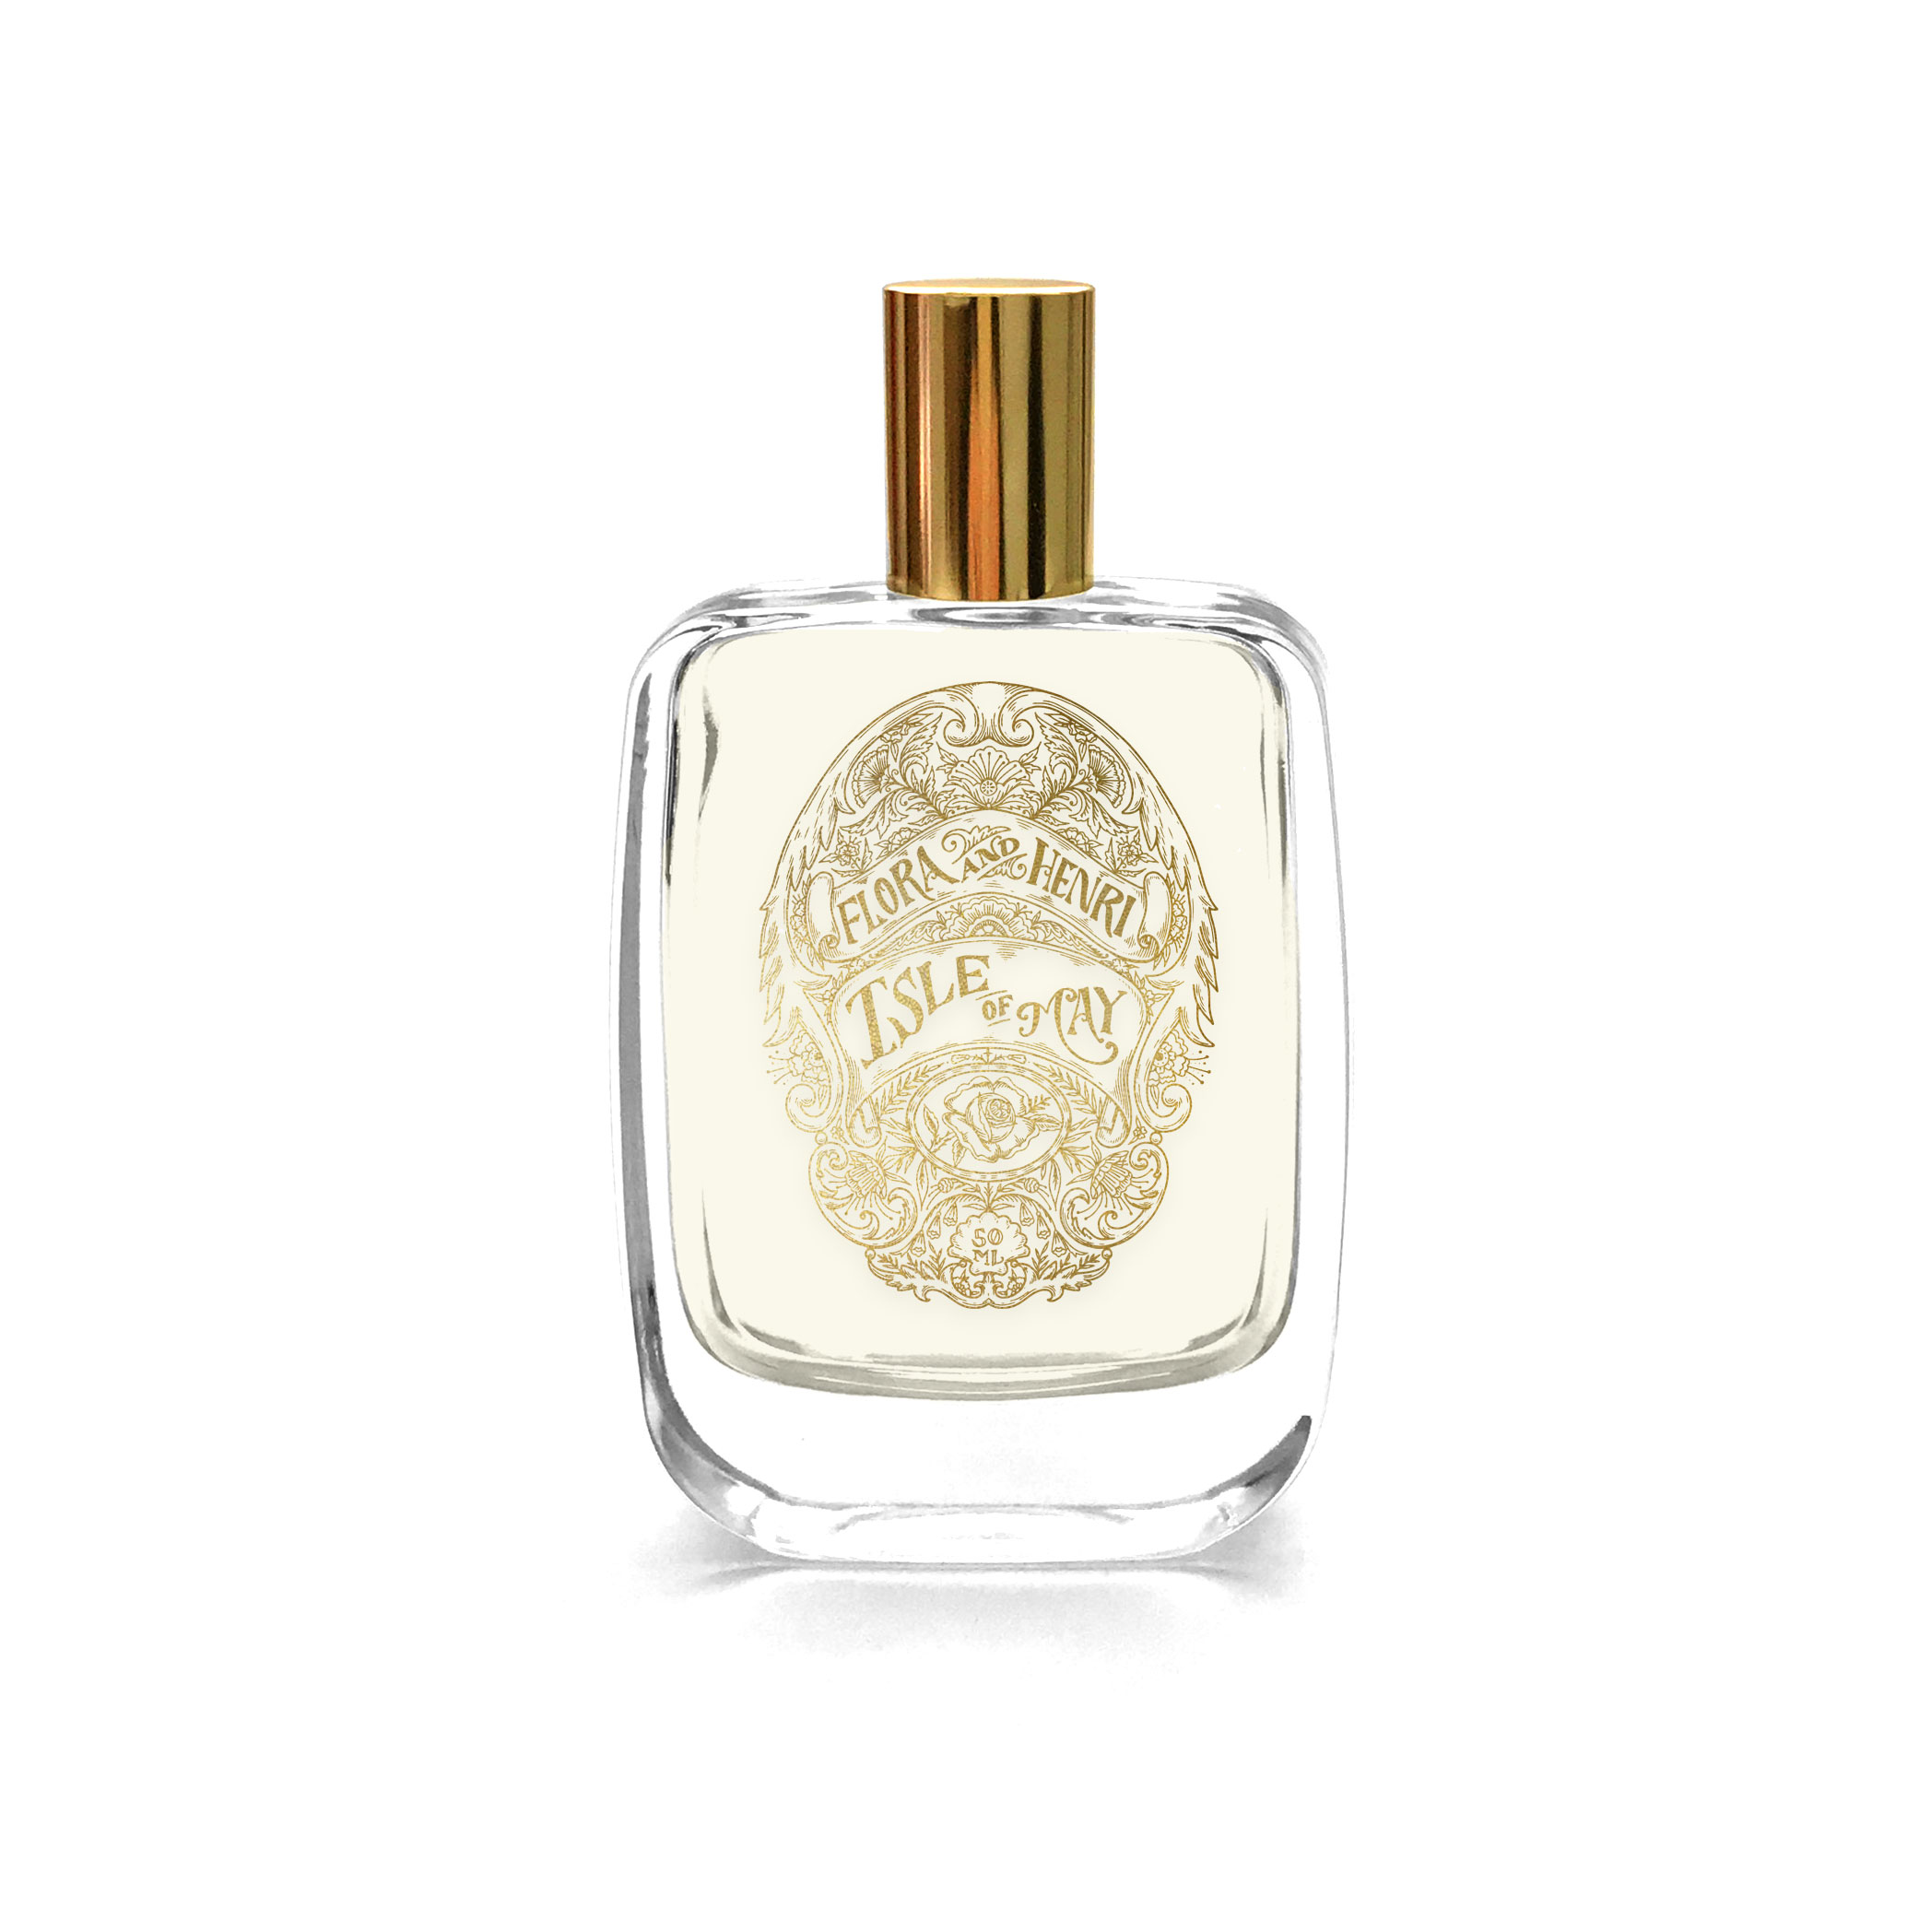 <p>Perfume - $30+. This 'Isle of May - Perfume by flora &amp; henri' is heaven in a bottle. A perfect gift for your significant other. She'll love it! Prices range from $30-$250 depending on size. Purchase locally at flora and henri, 401 First Ave. S. Seattle, WA 98104. (Image: flora &amp; henri){&nbsp;}<br></p><p></p>